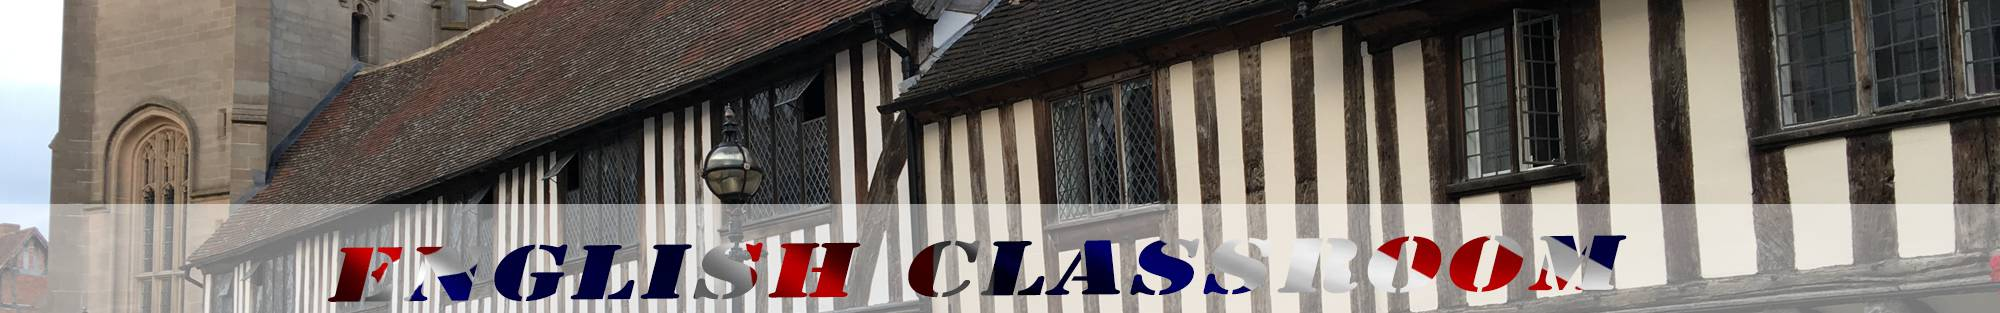 timbered houses straford-upon-avon header english classroom